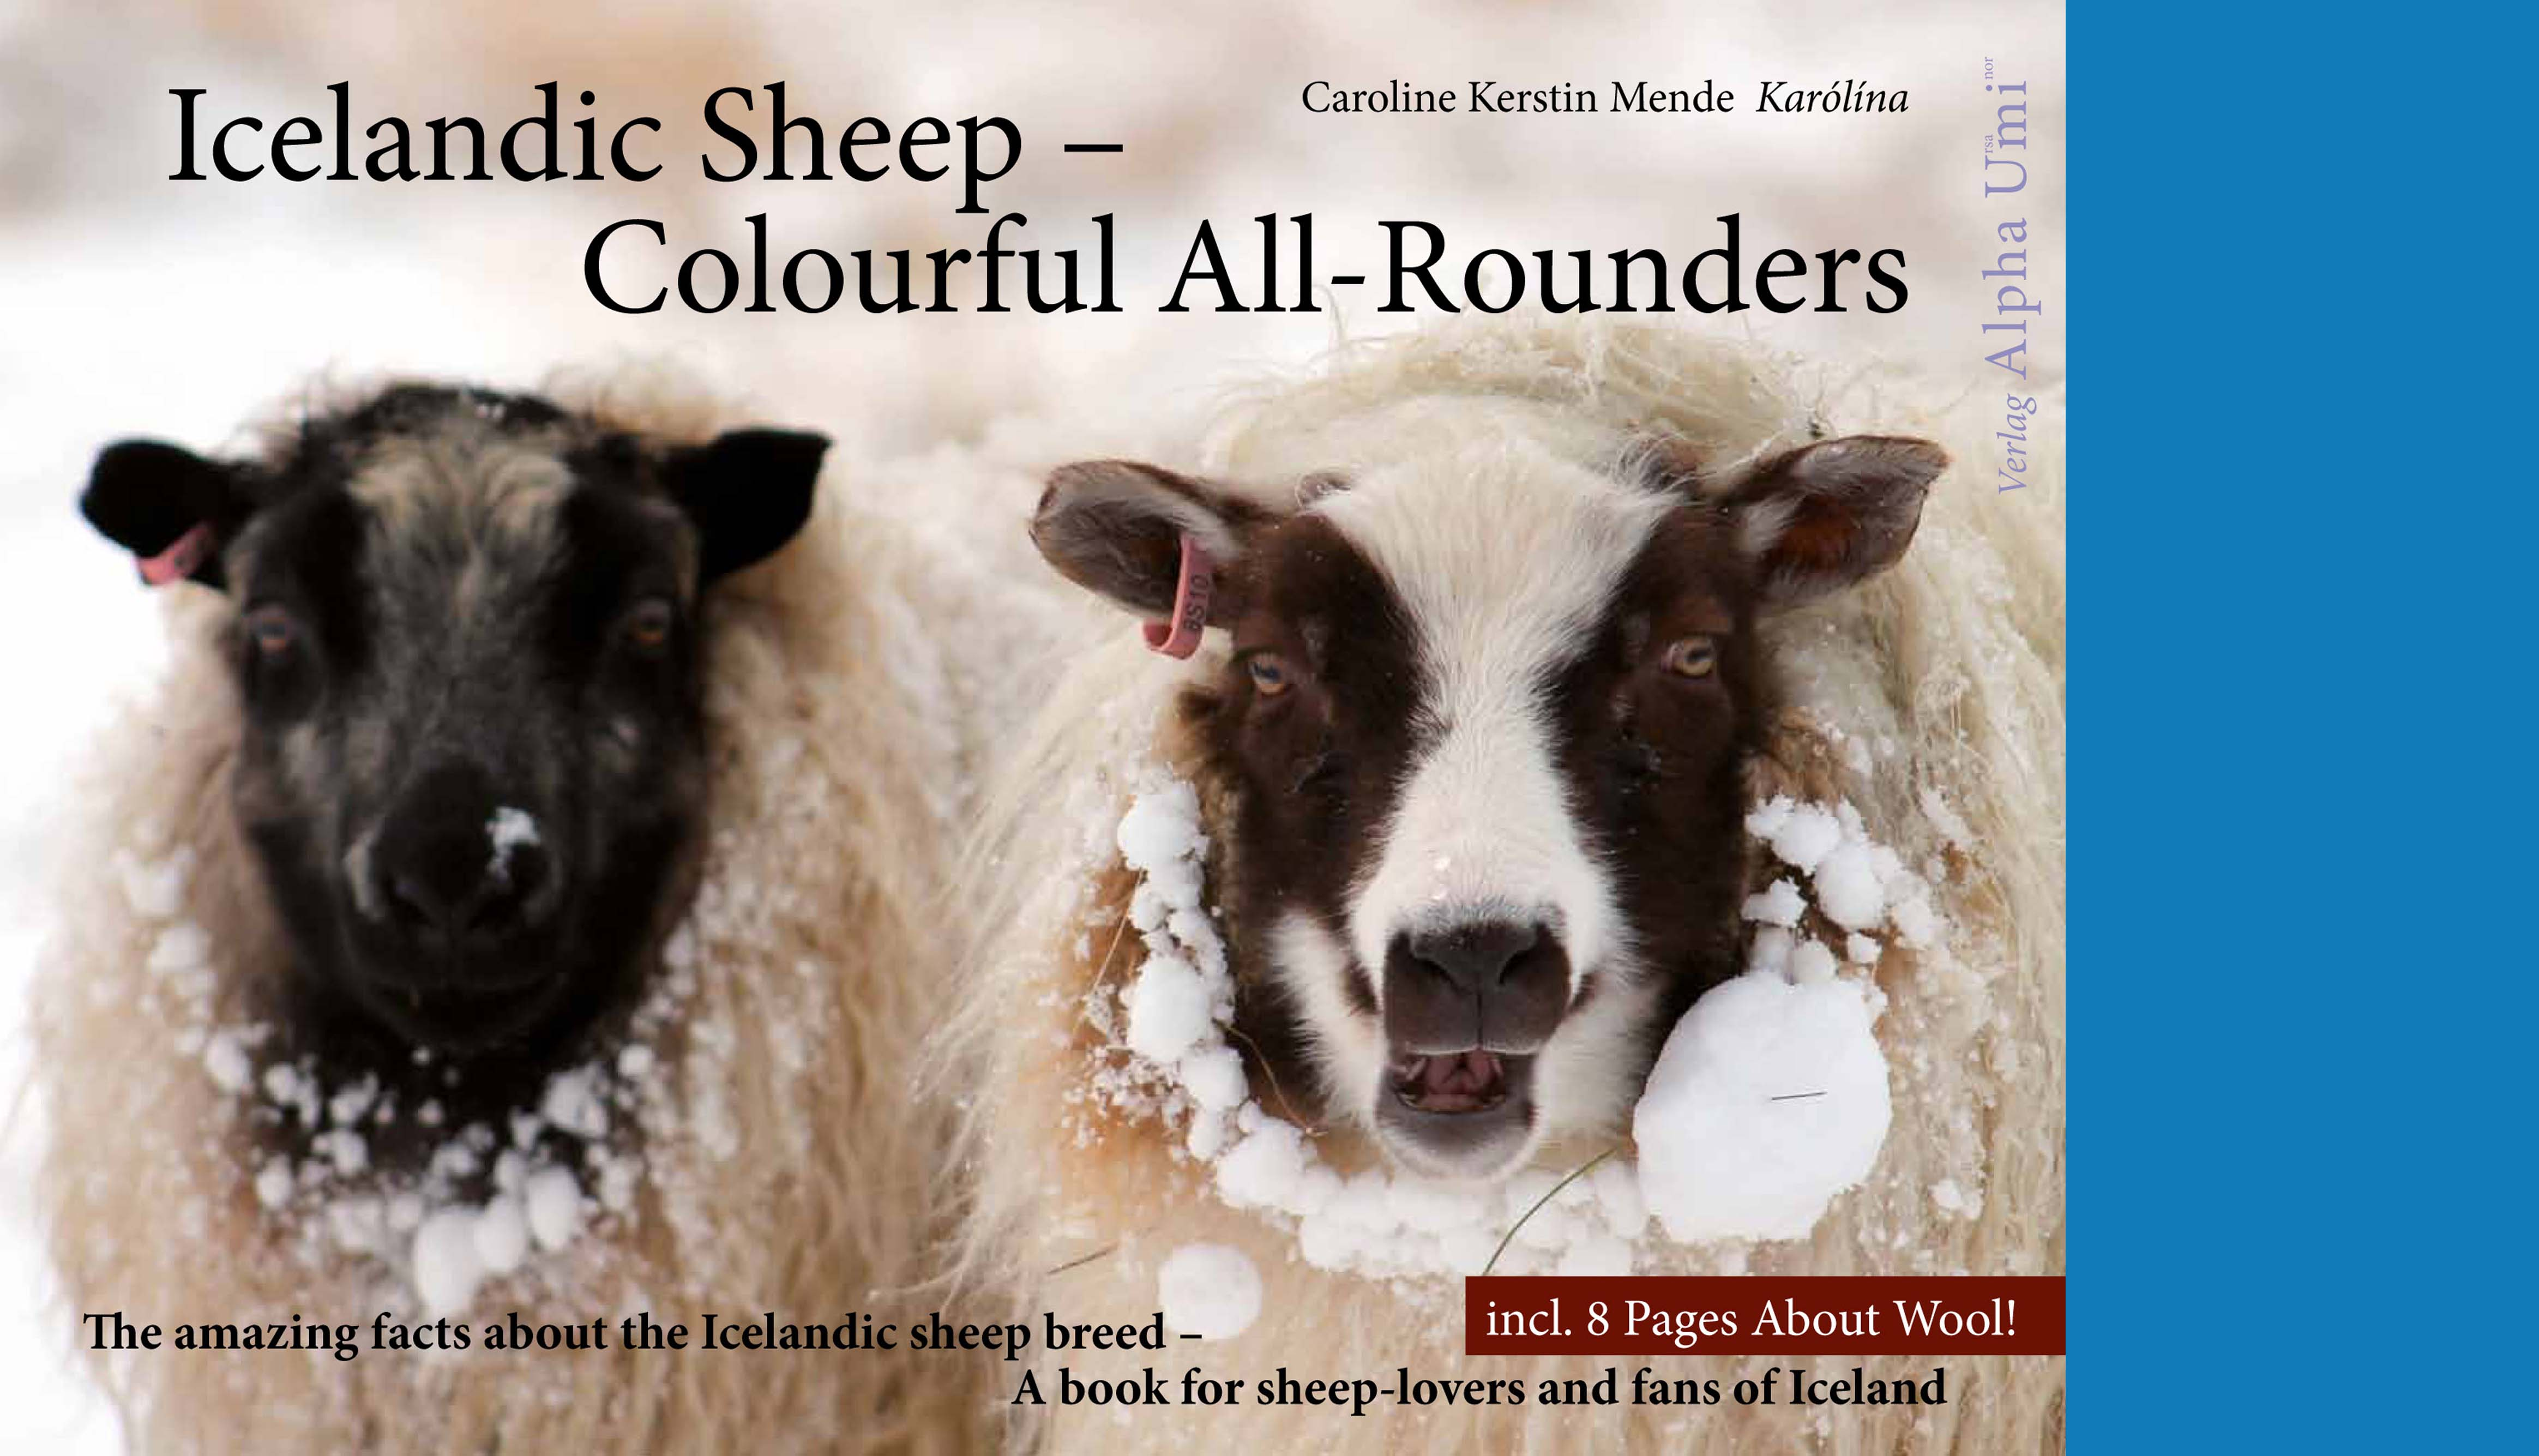 Internet blau 1509 Icelandic sheep Cover